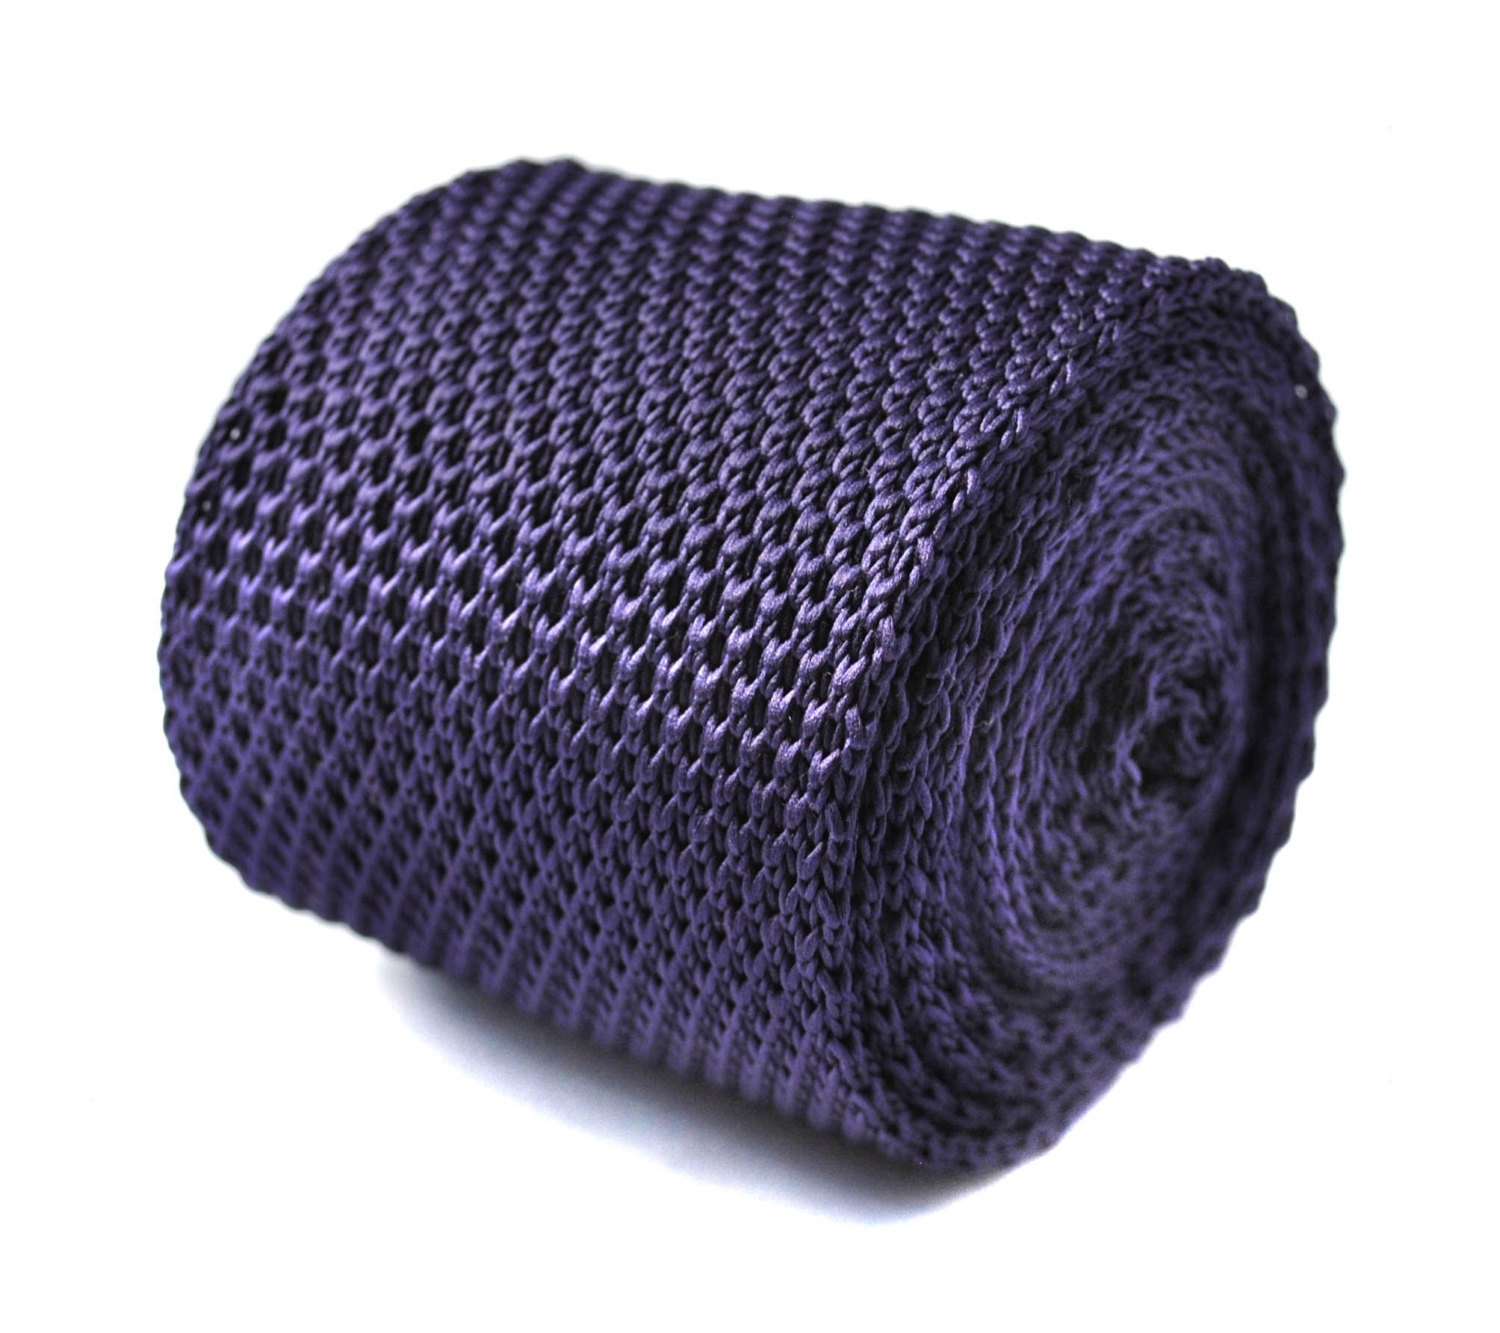 Plain purple knitted skinny tie with pointed end by Frederick Thomas FT3237